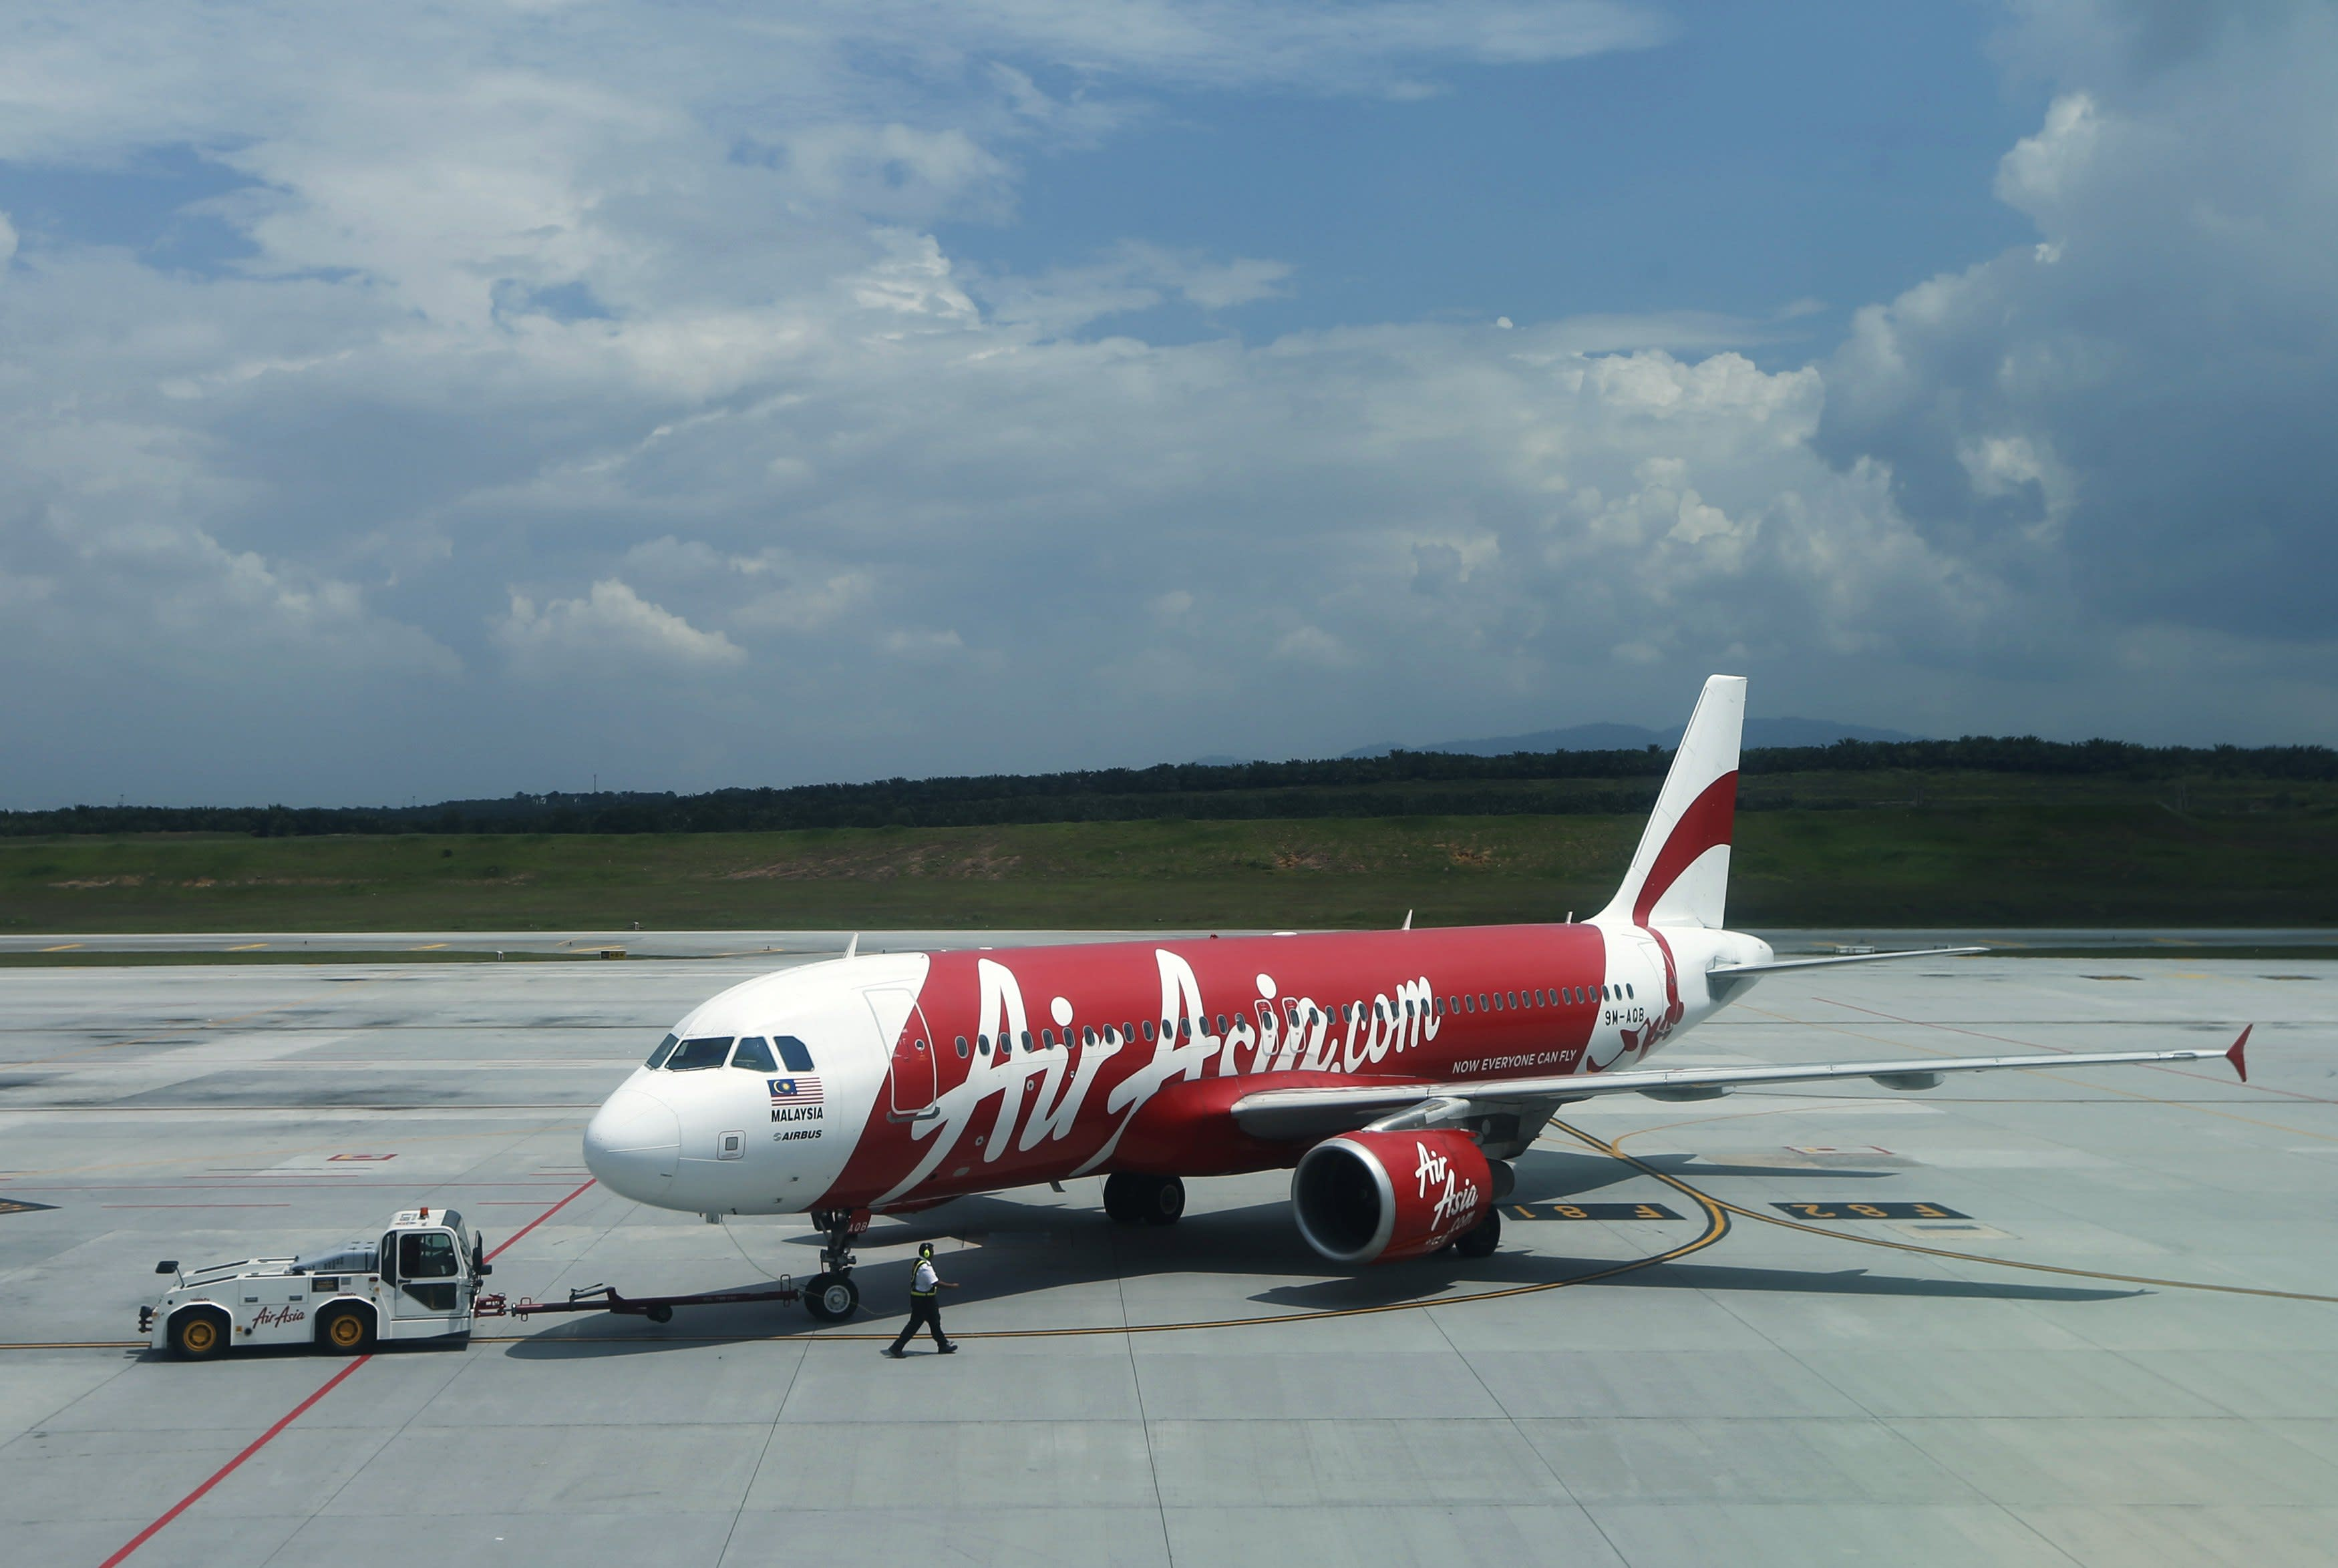 Search for missing AirAsia jet QZ8501 bound for Singapore from Indonesia suspended